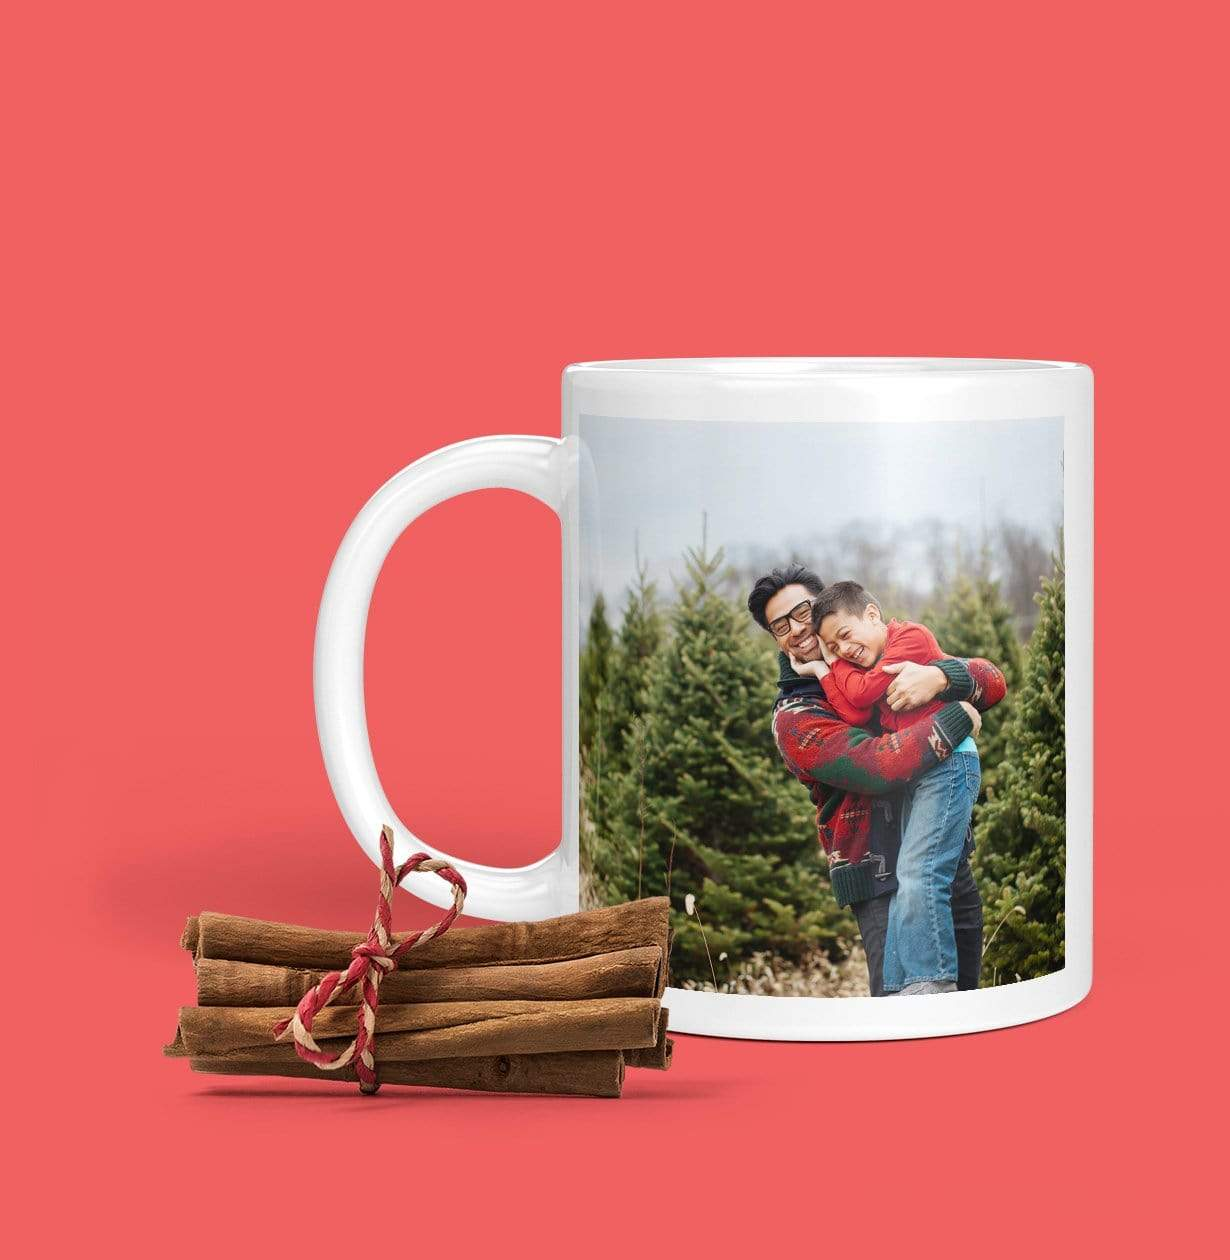 Photo Mug - Photo Gift Ideas Under $25